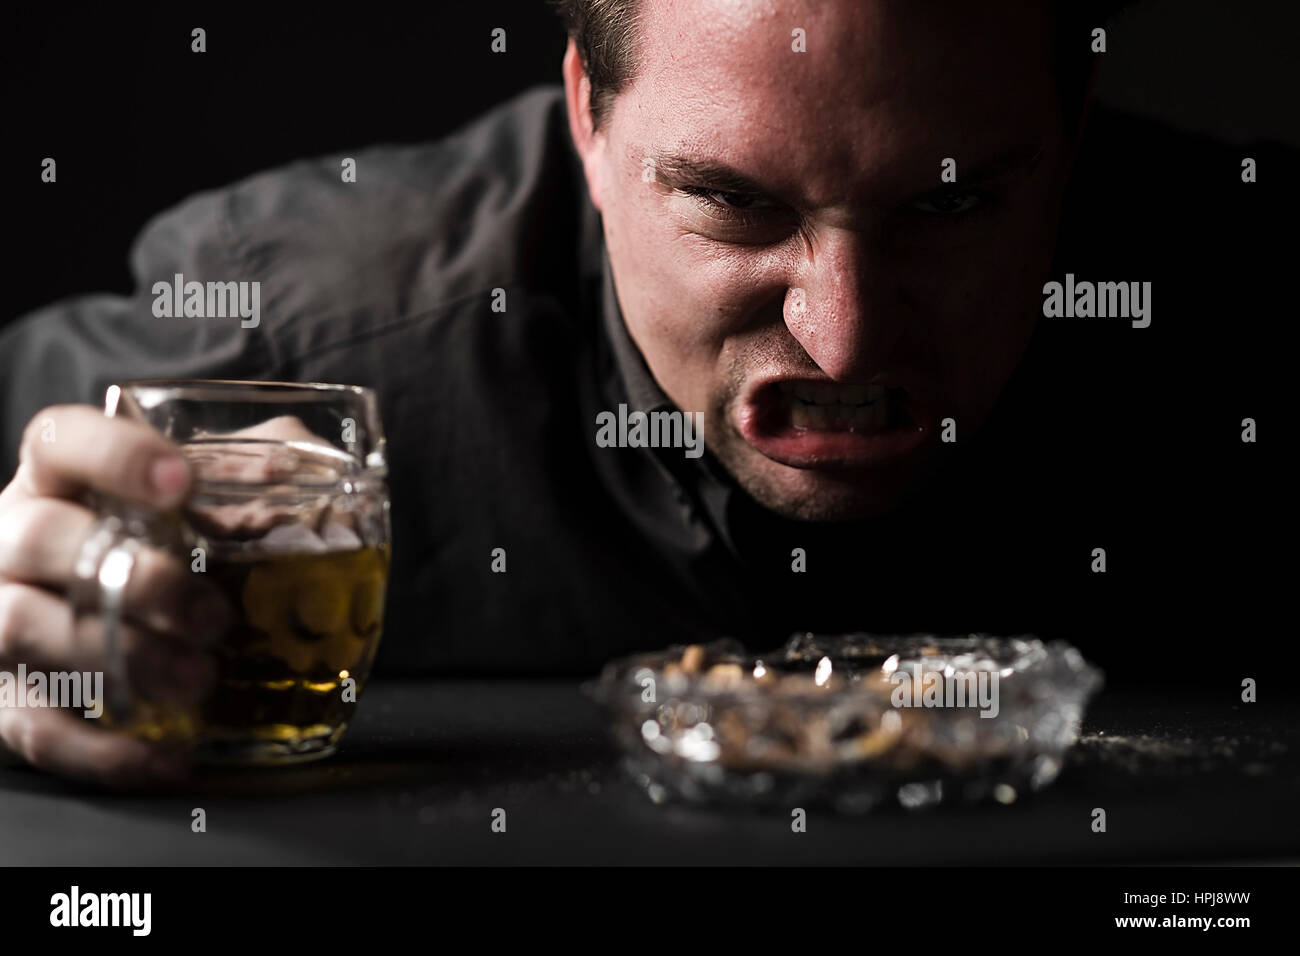 Model released , Aggressiver Mann mit Bier - aggressive man with beer Stock Photo